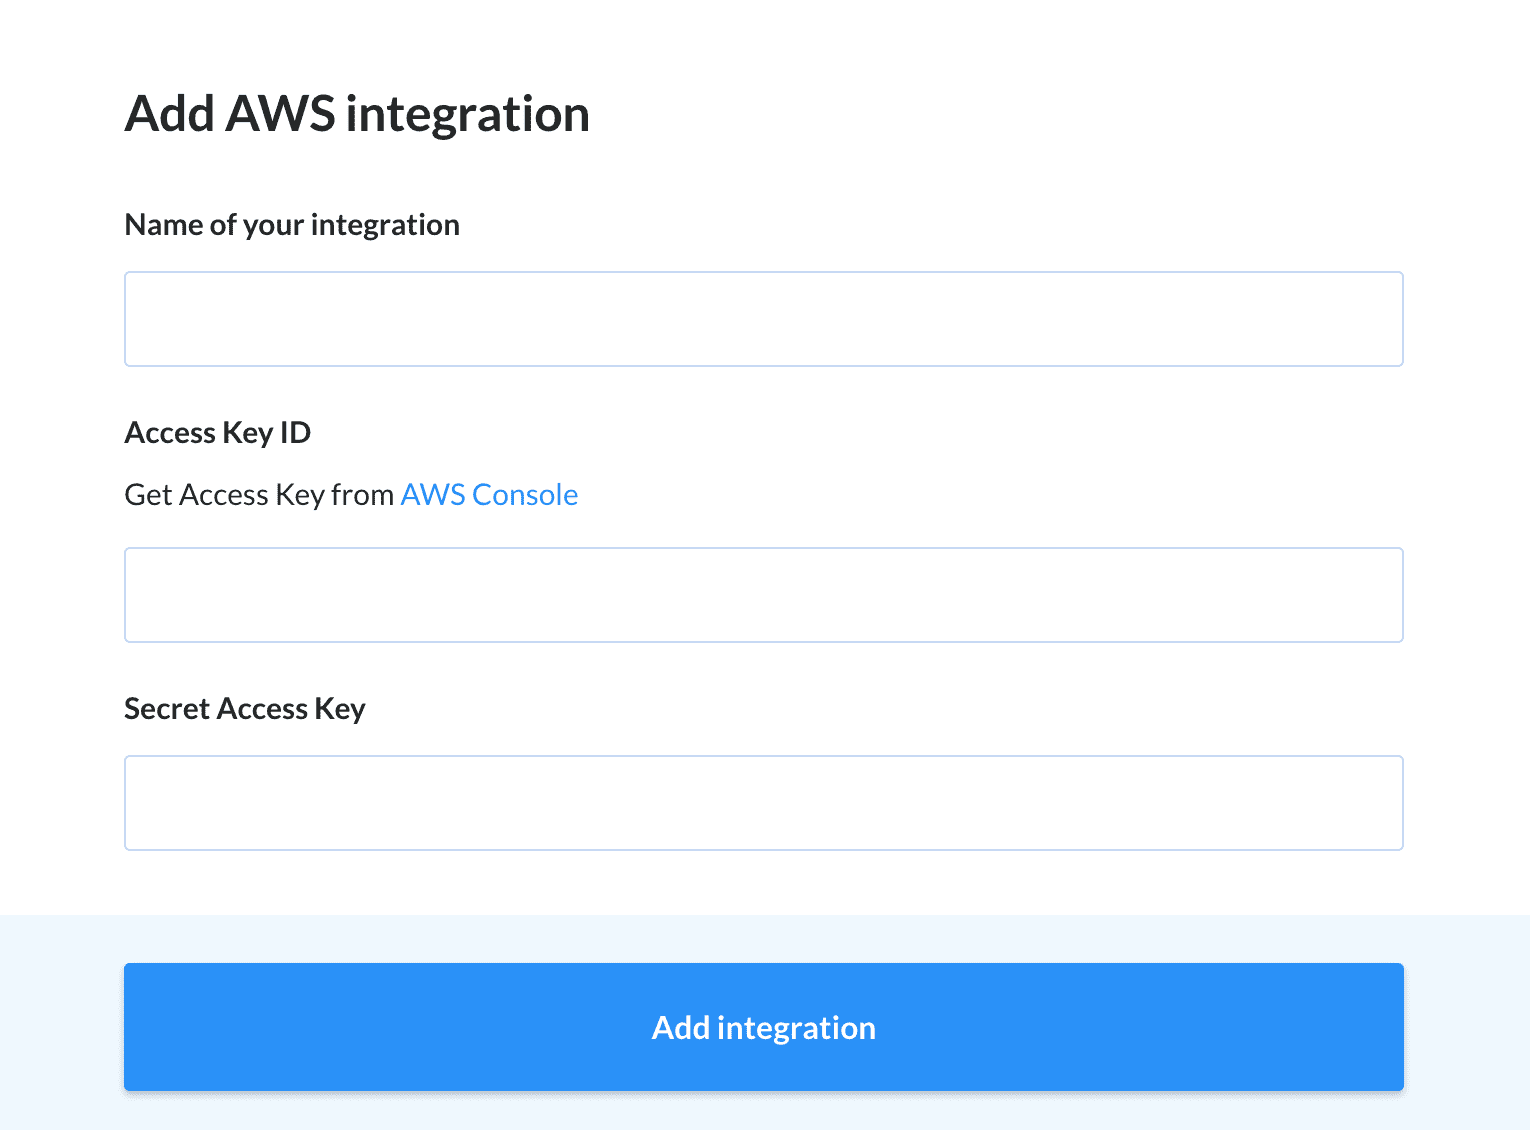 Adding AWS integration